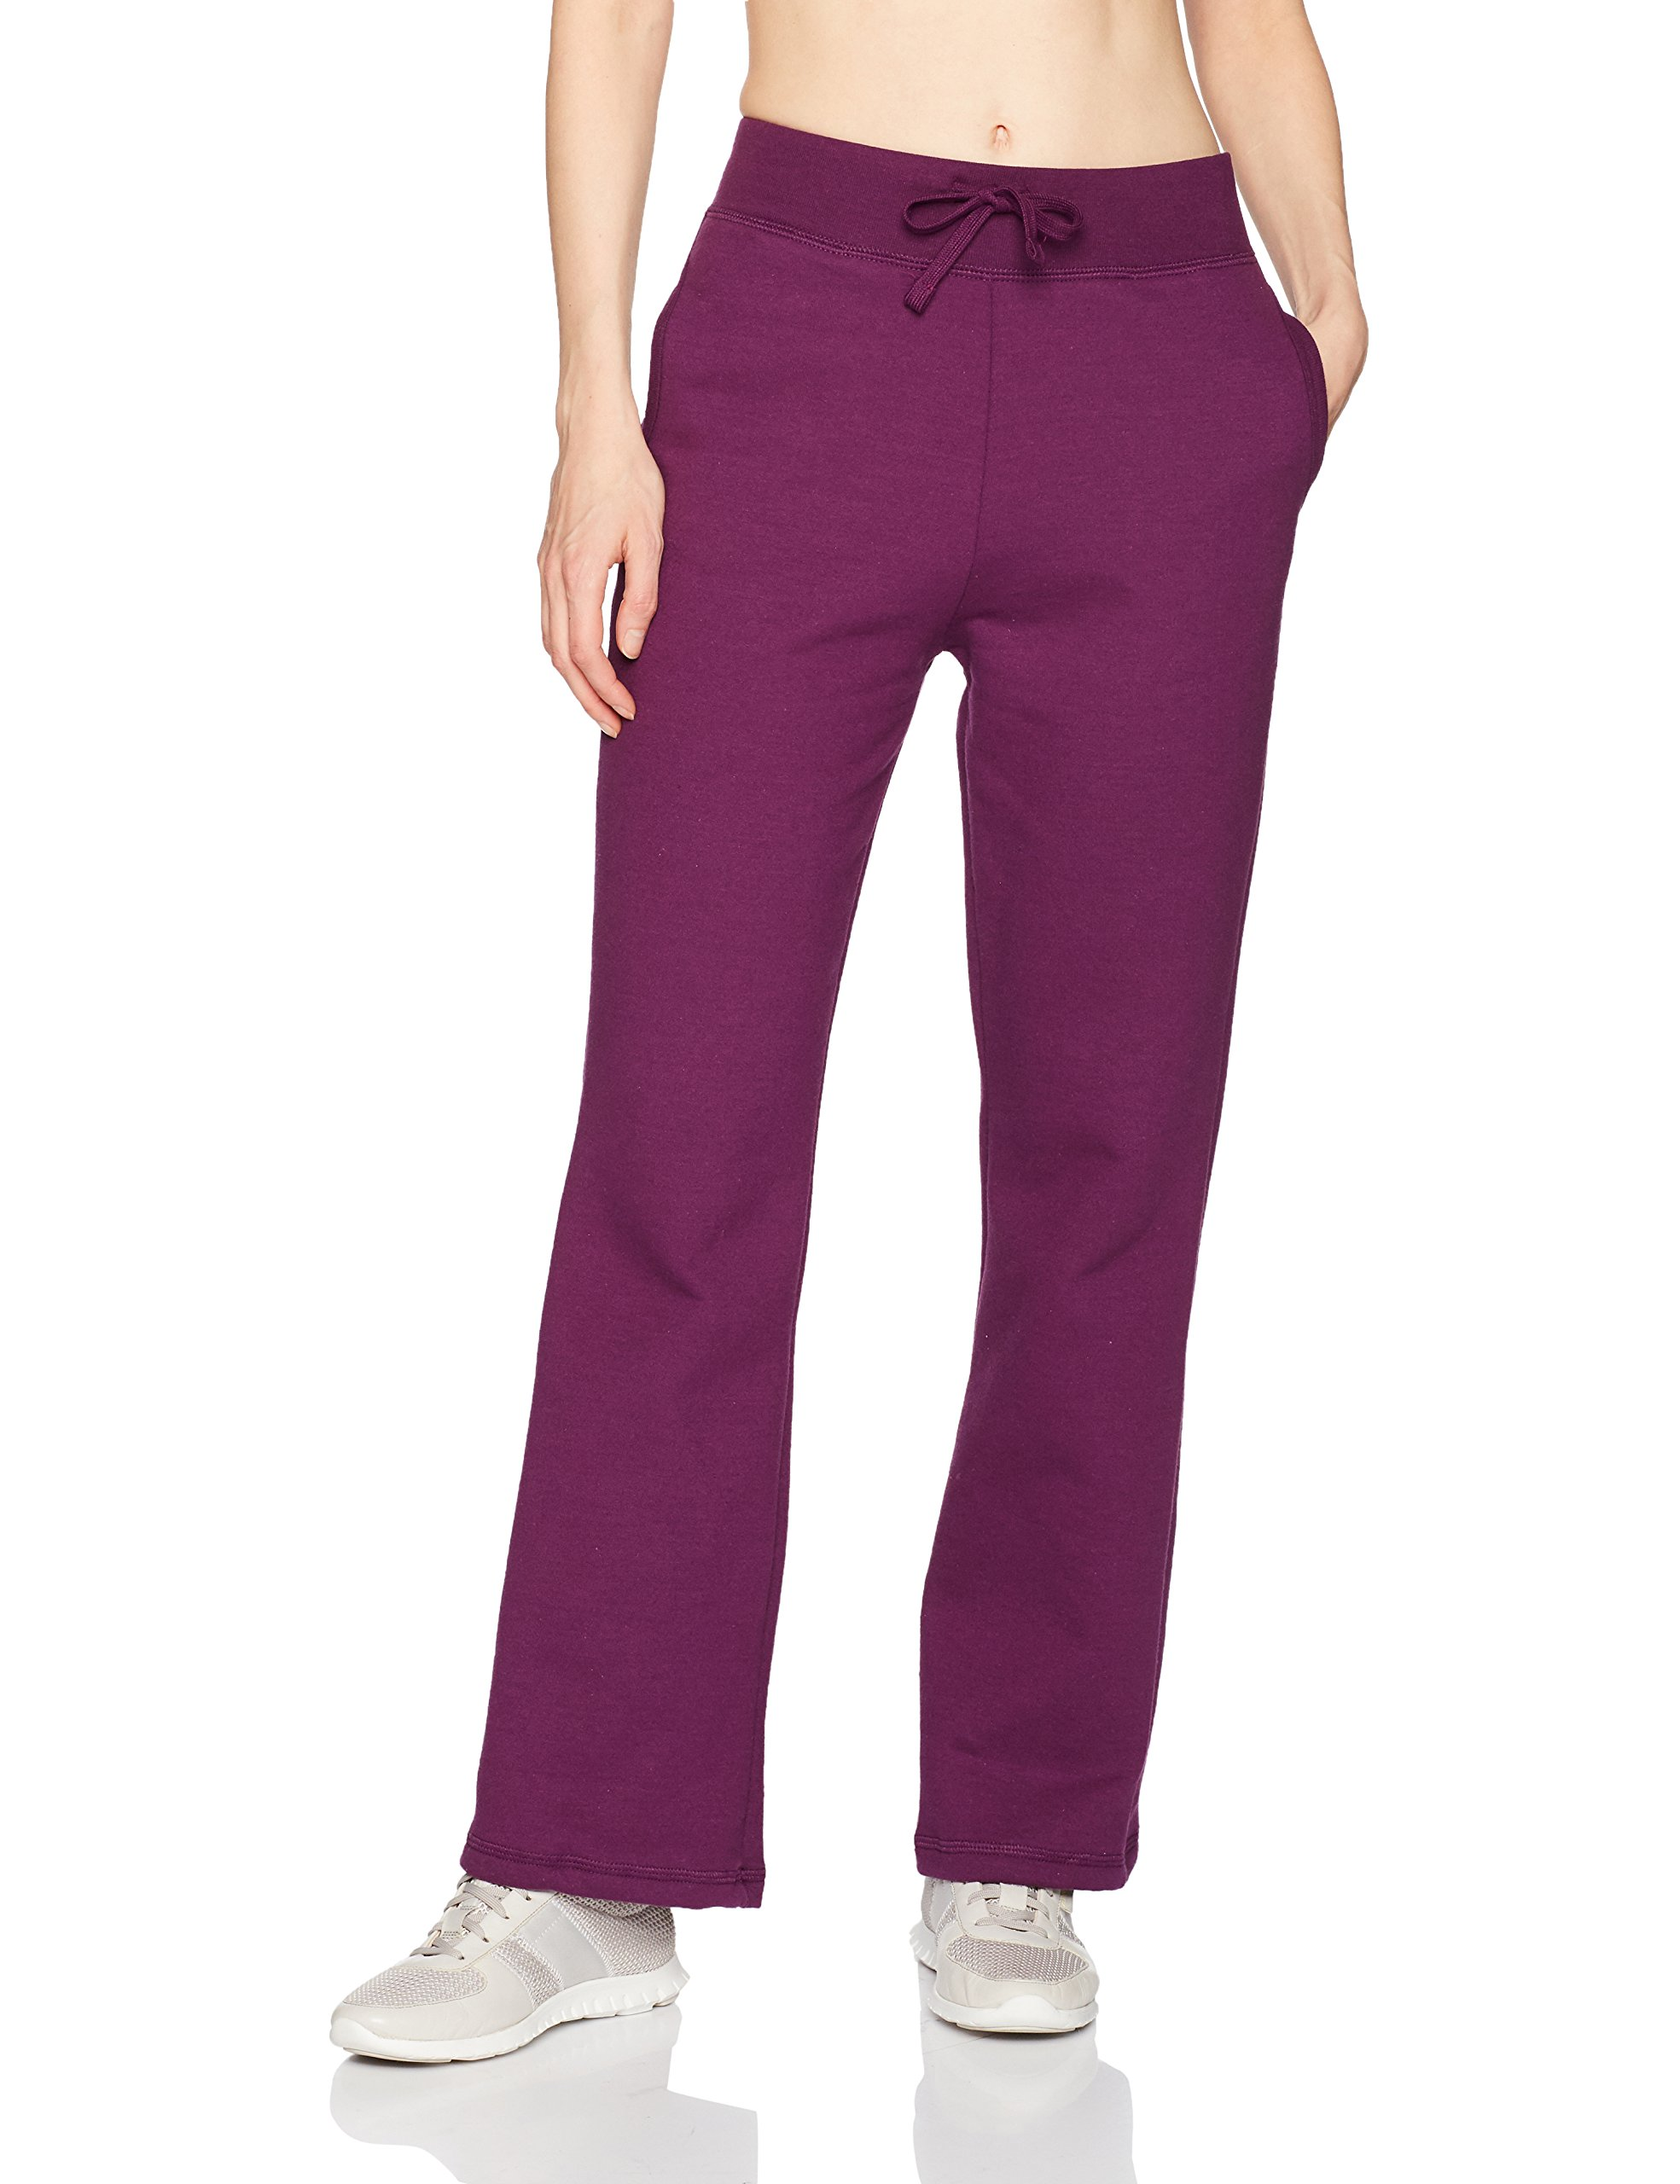 Hanes Sweatpants Women Petite